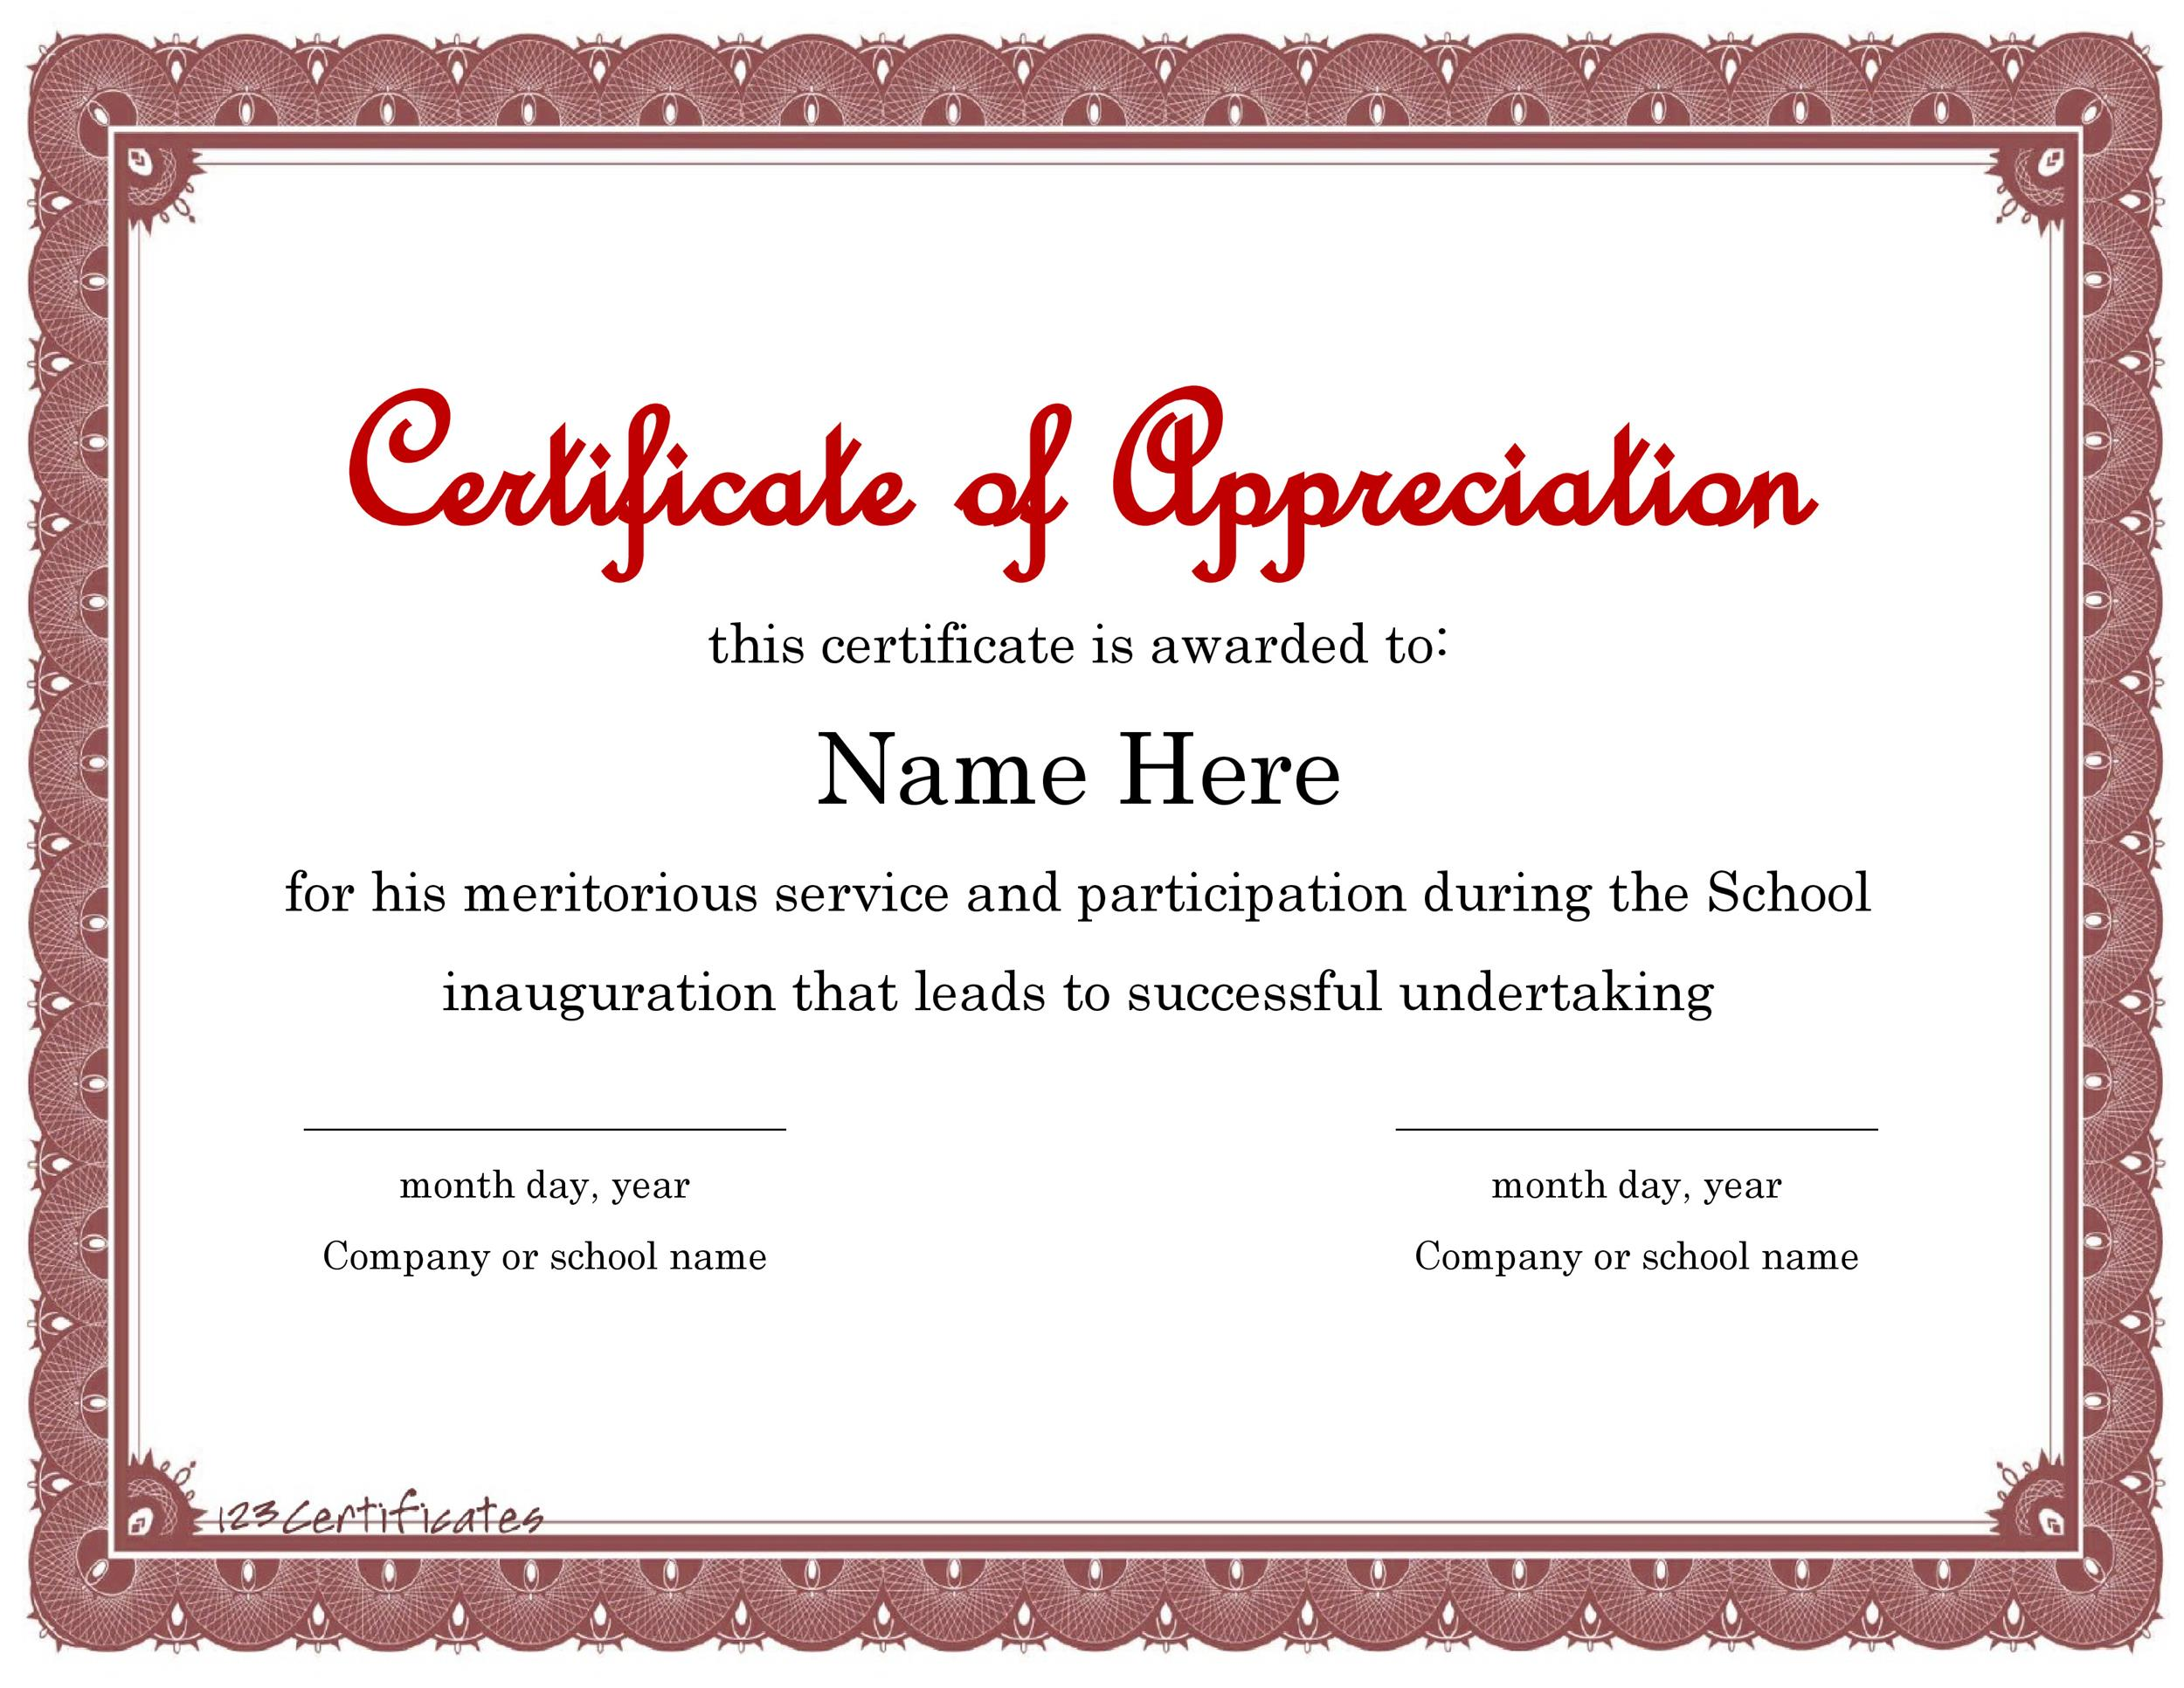 30 free certificate of appreciation templates and letters printable certificate of appreciation 01 yelopaper Gallery